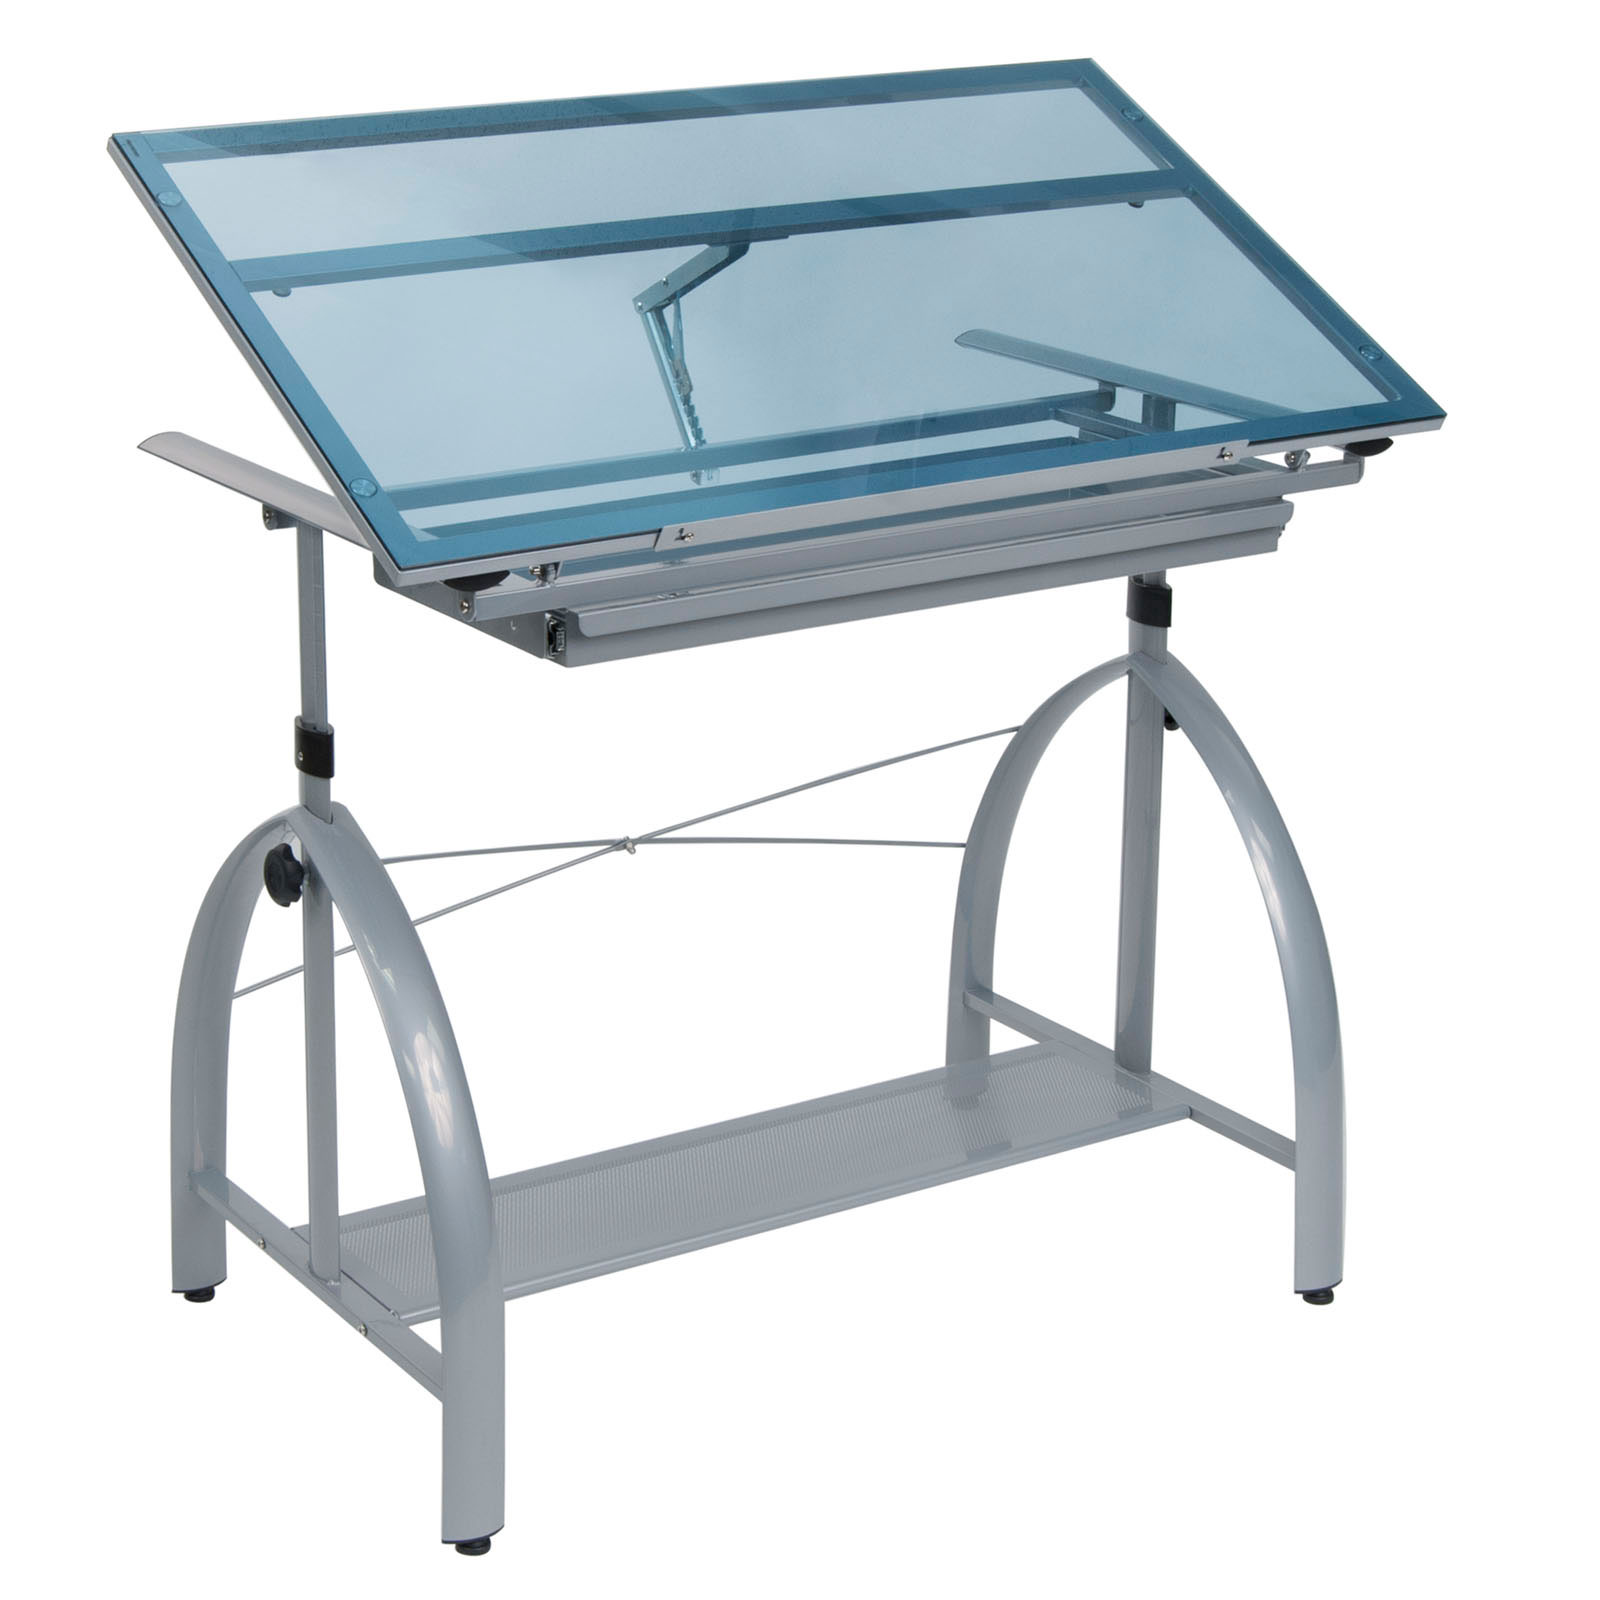 Groovy Details About Studio Designs Avanta Glass Adjustable Art Drafting And Drawing Table Desk Home Interior And Landscaping Analalmasignezvosmurscom